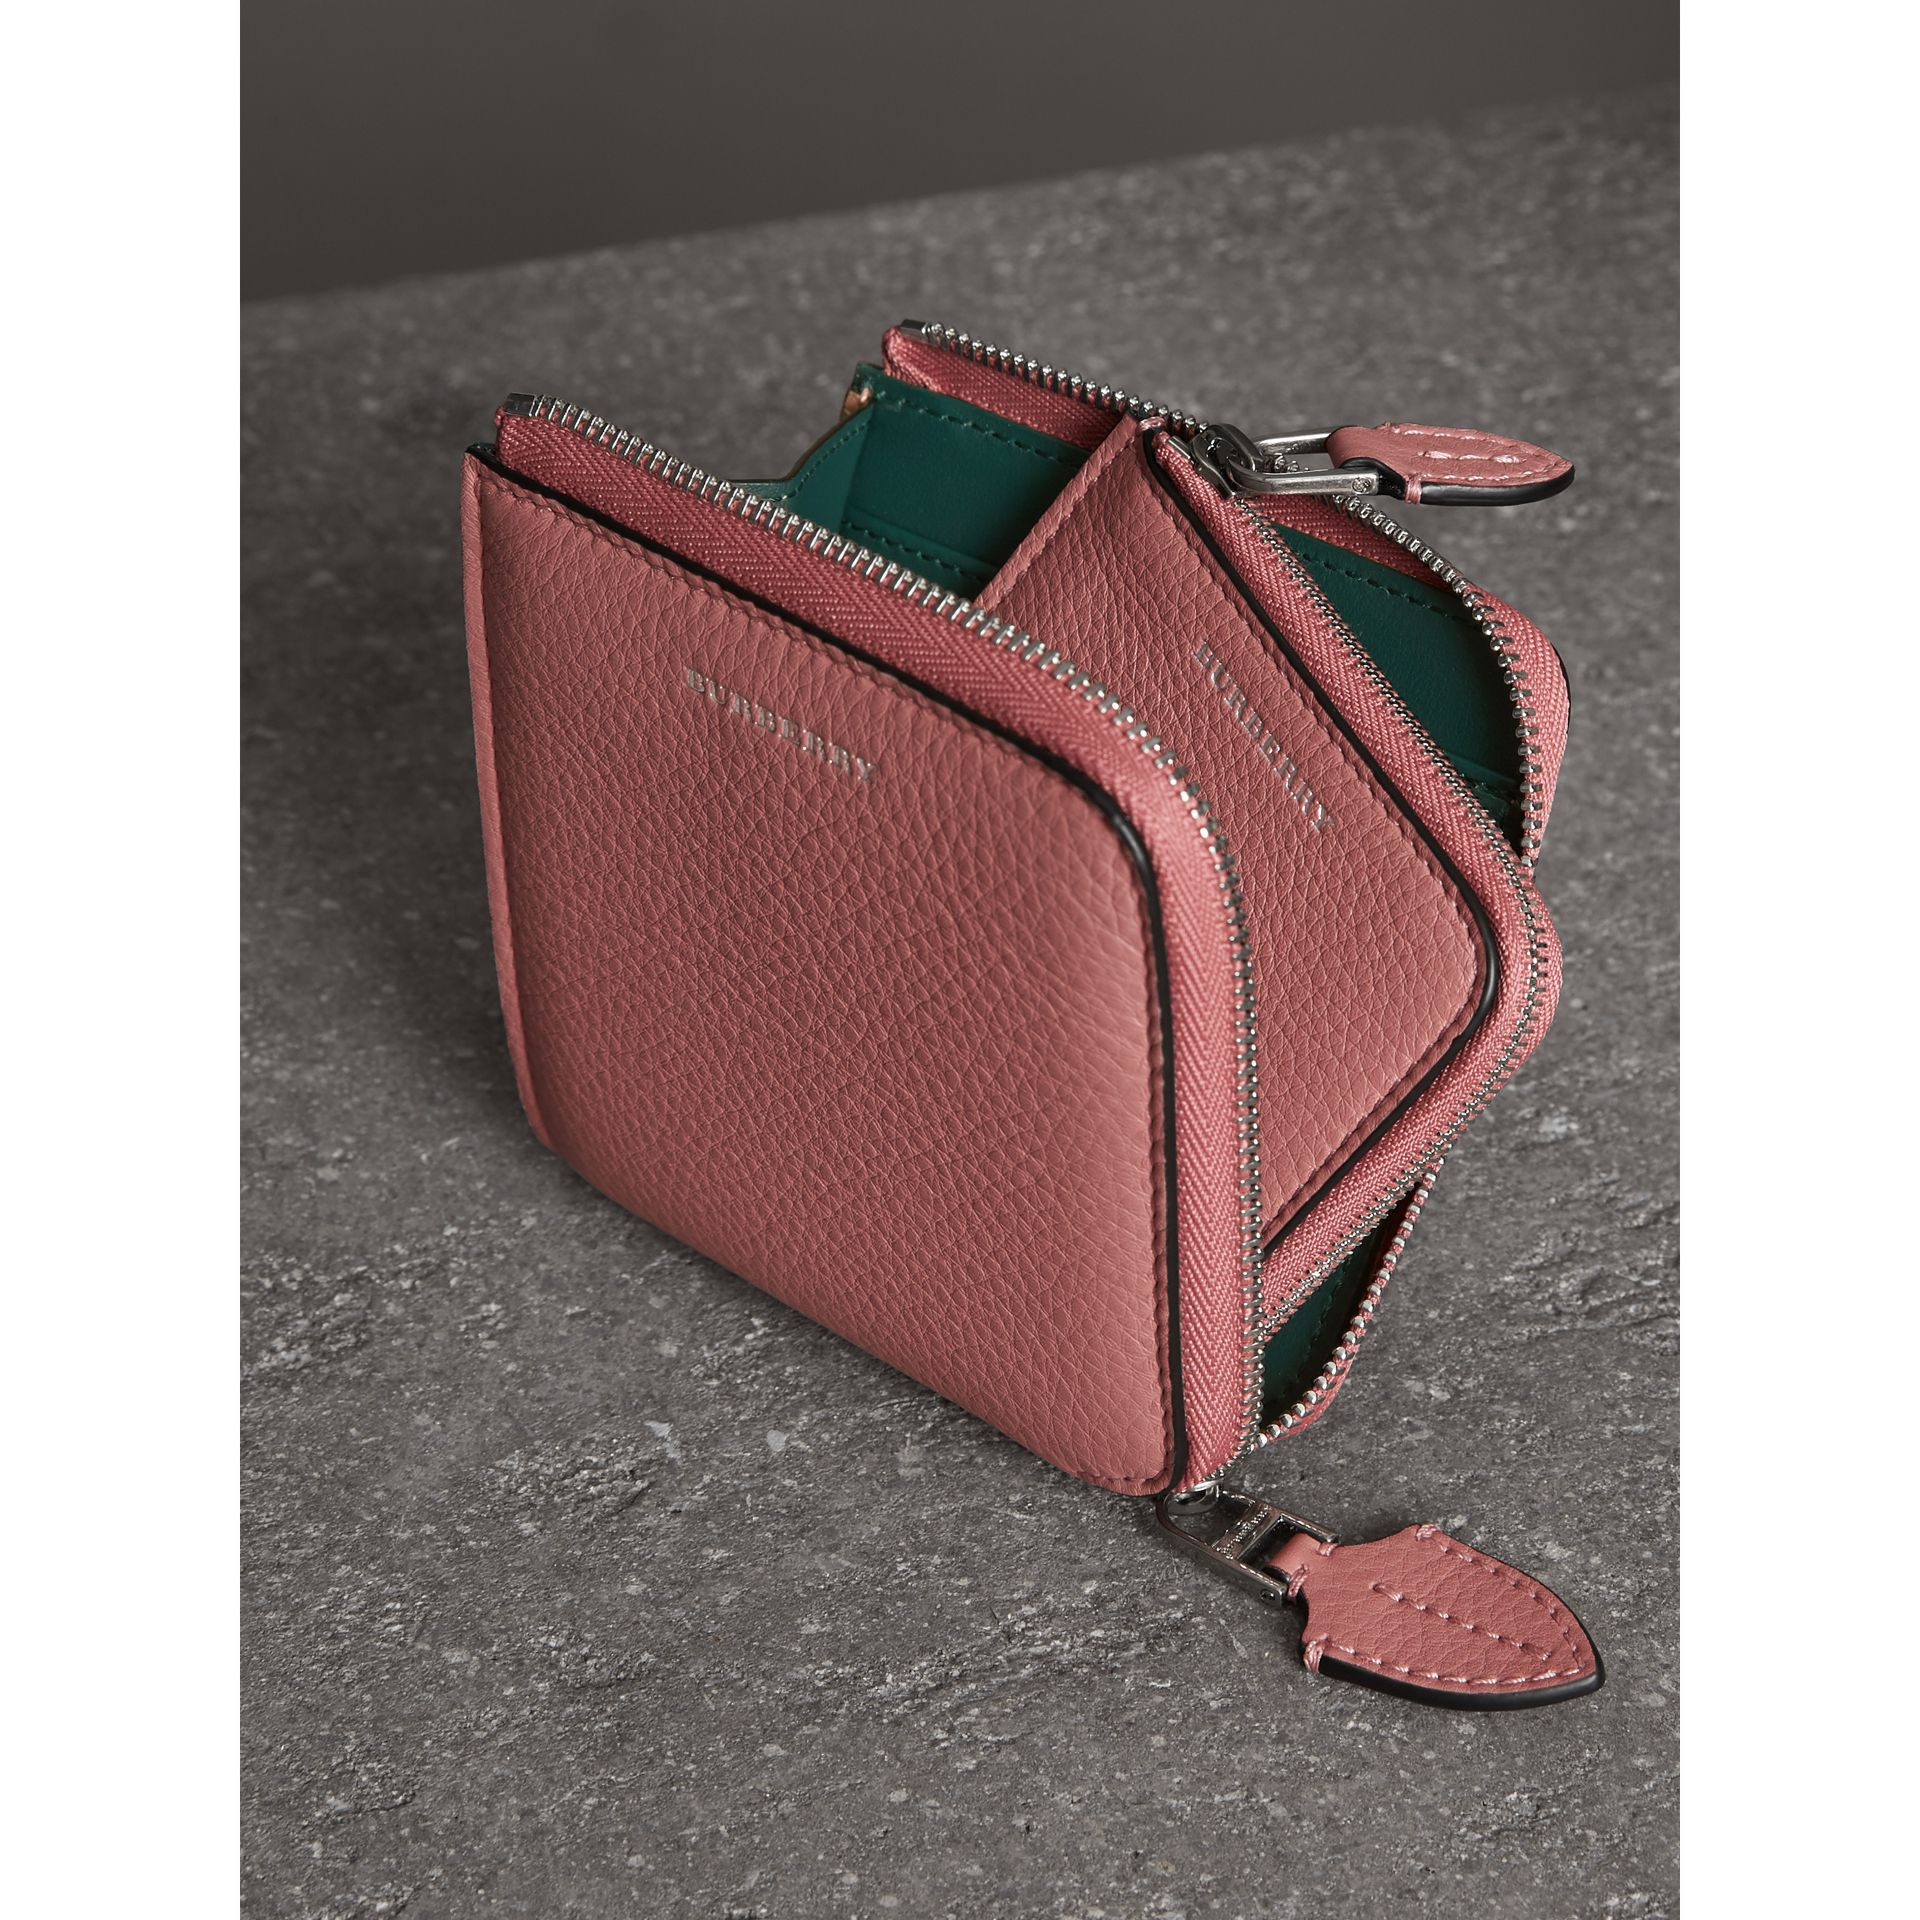 Grainy Leather Square Ziparound Wallet in Dusty Rose - Women | Burberry United Kingdom - gallery image 3